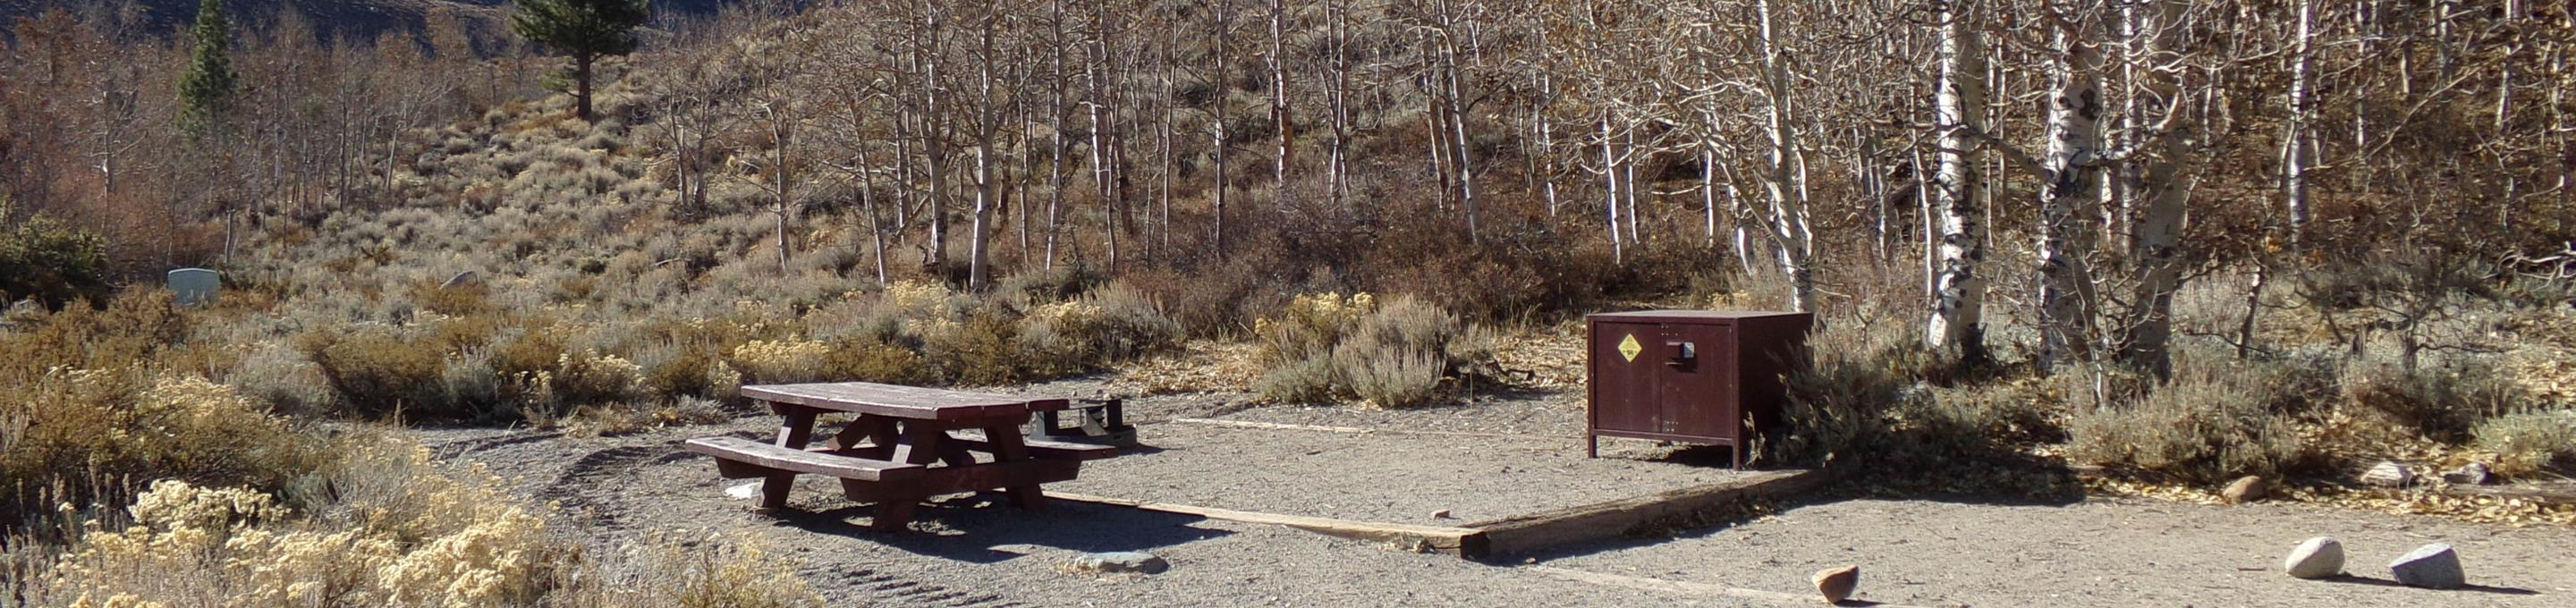 McGee Creek Campground site #25 full campsite view with picnic area, food storage, and fire pit.